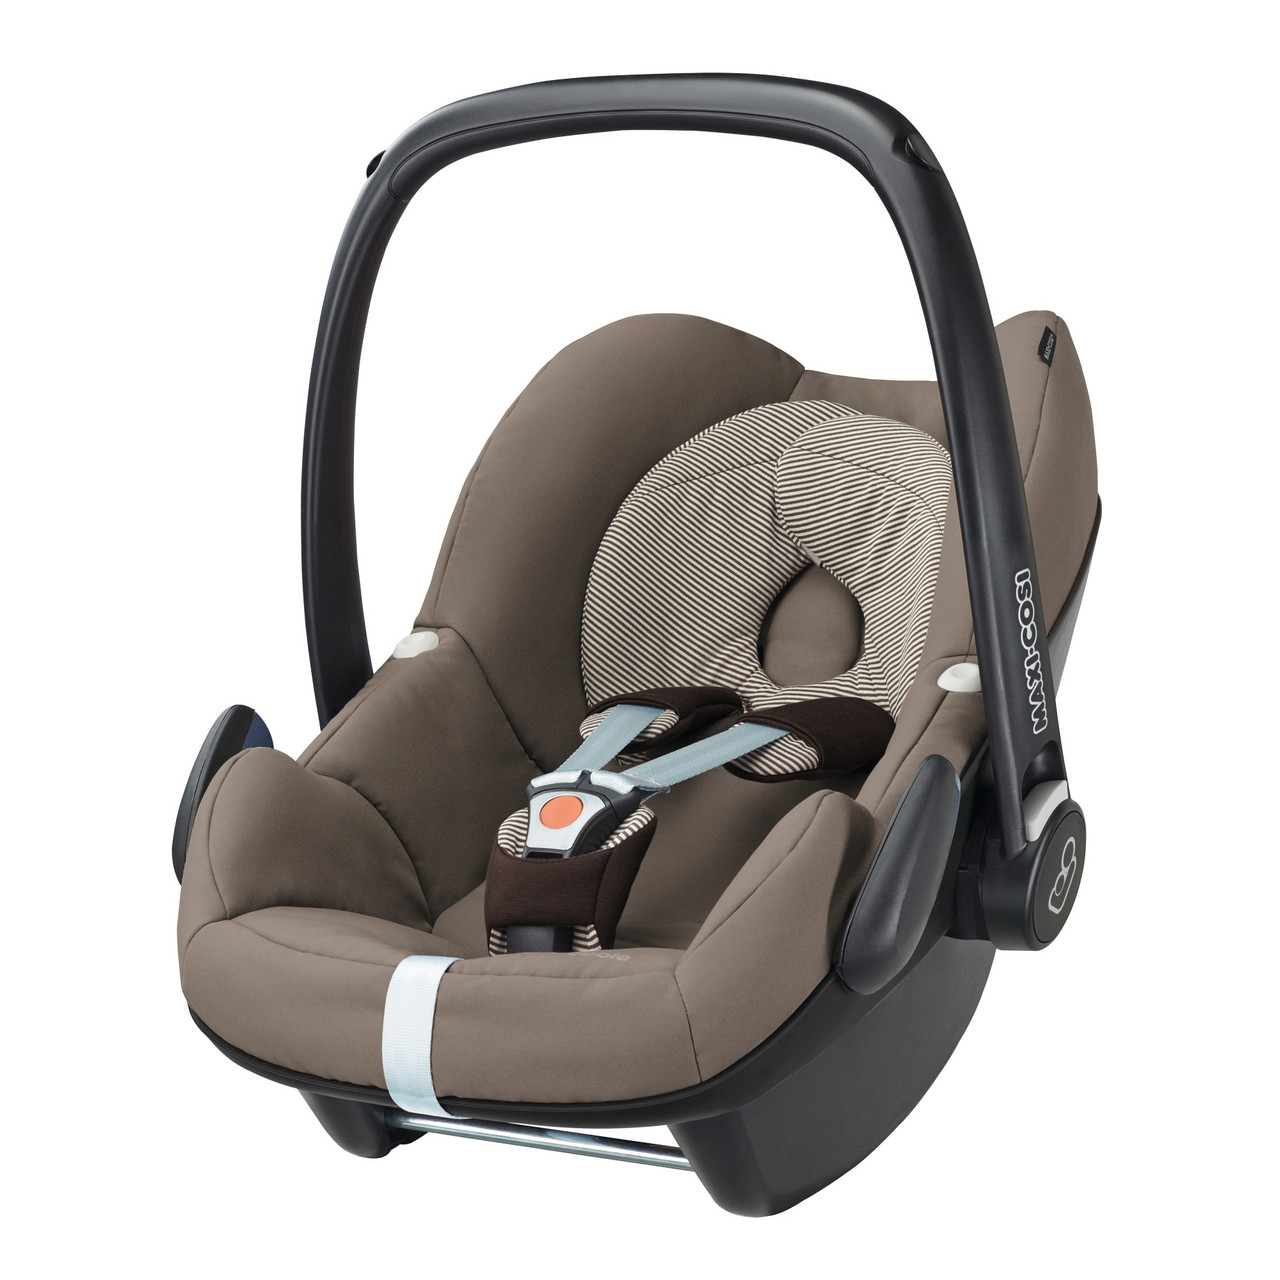 Автокресло Maxi Cosi Pebble 0-13 кг (63078980) Earth Brown (коричневый)